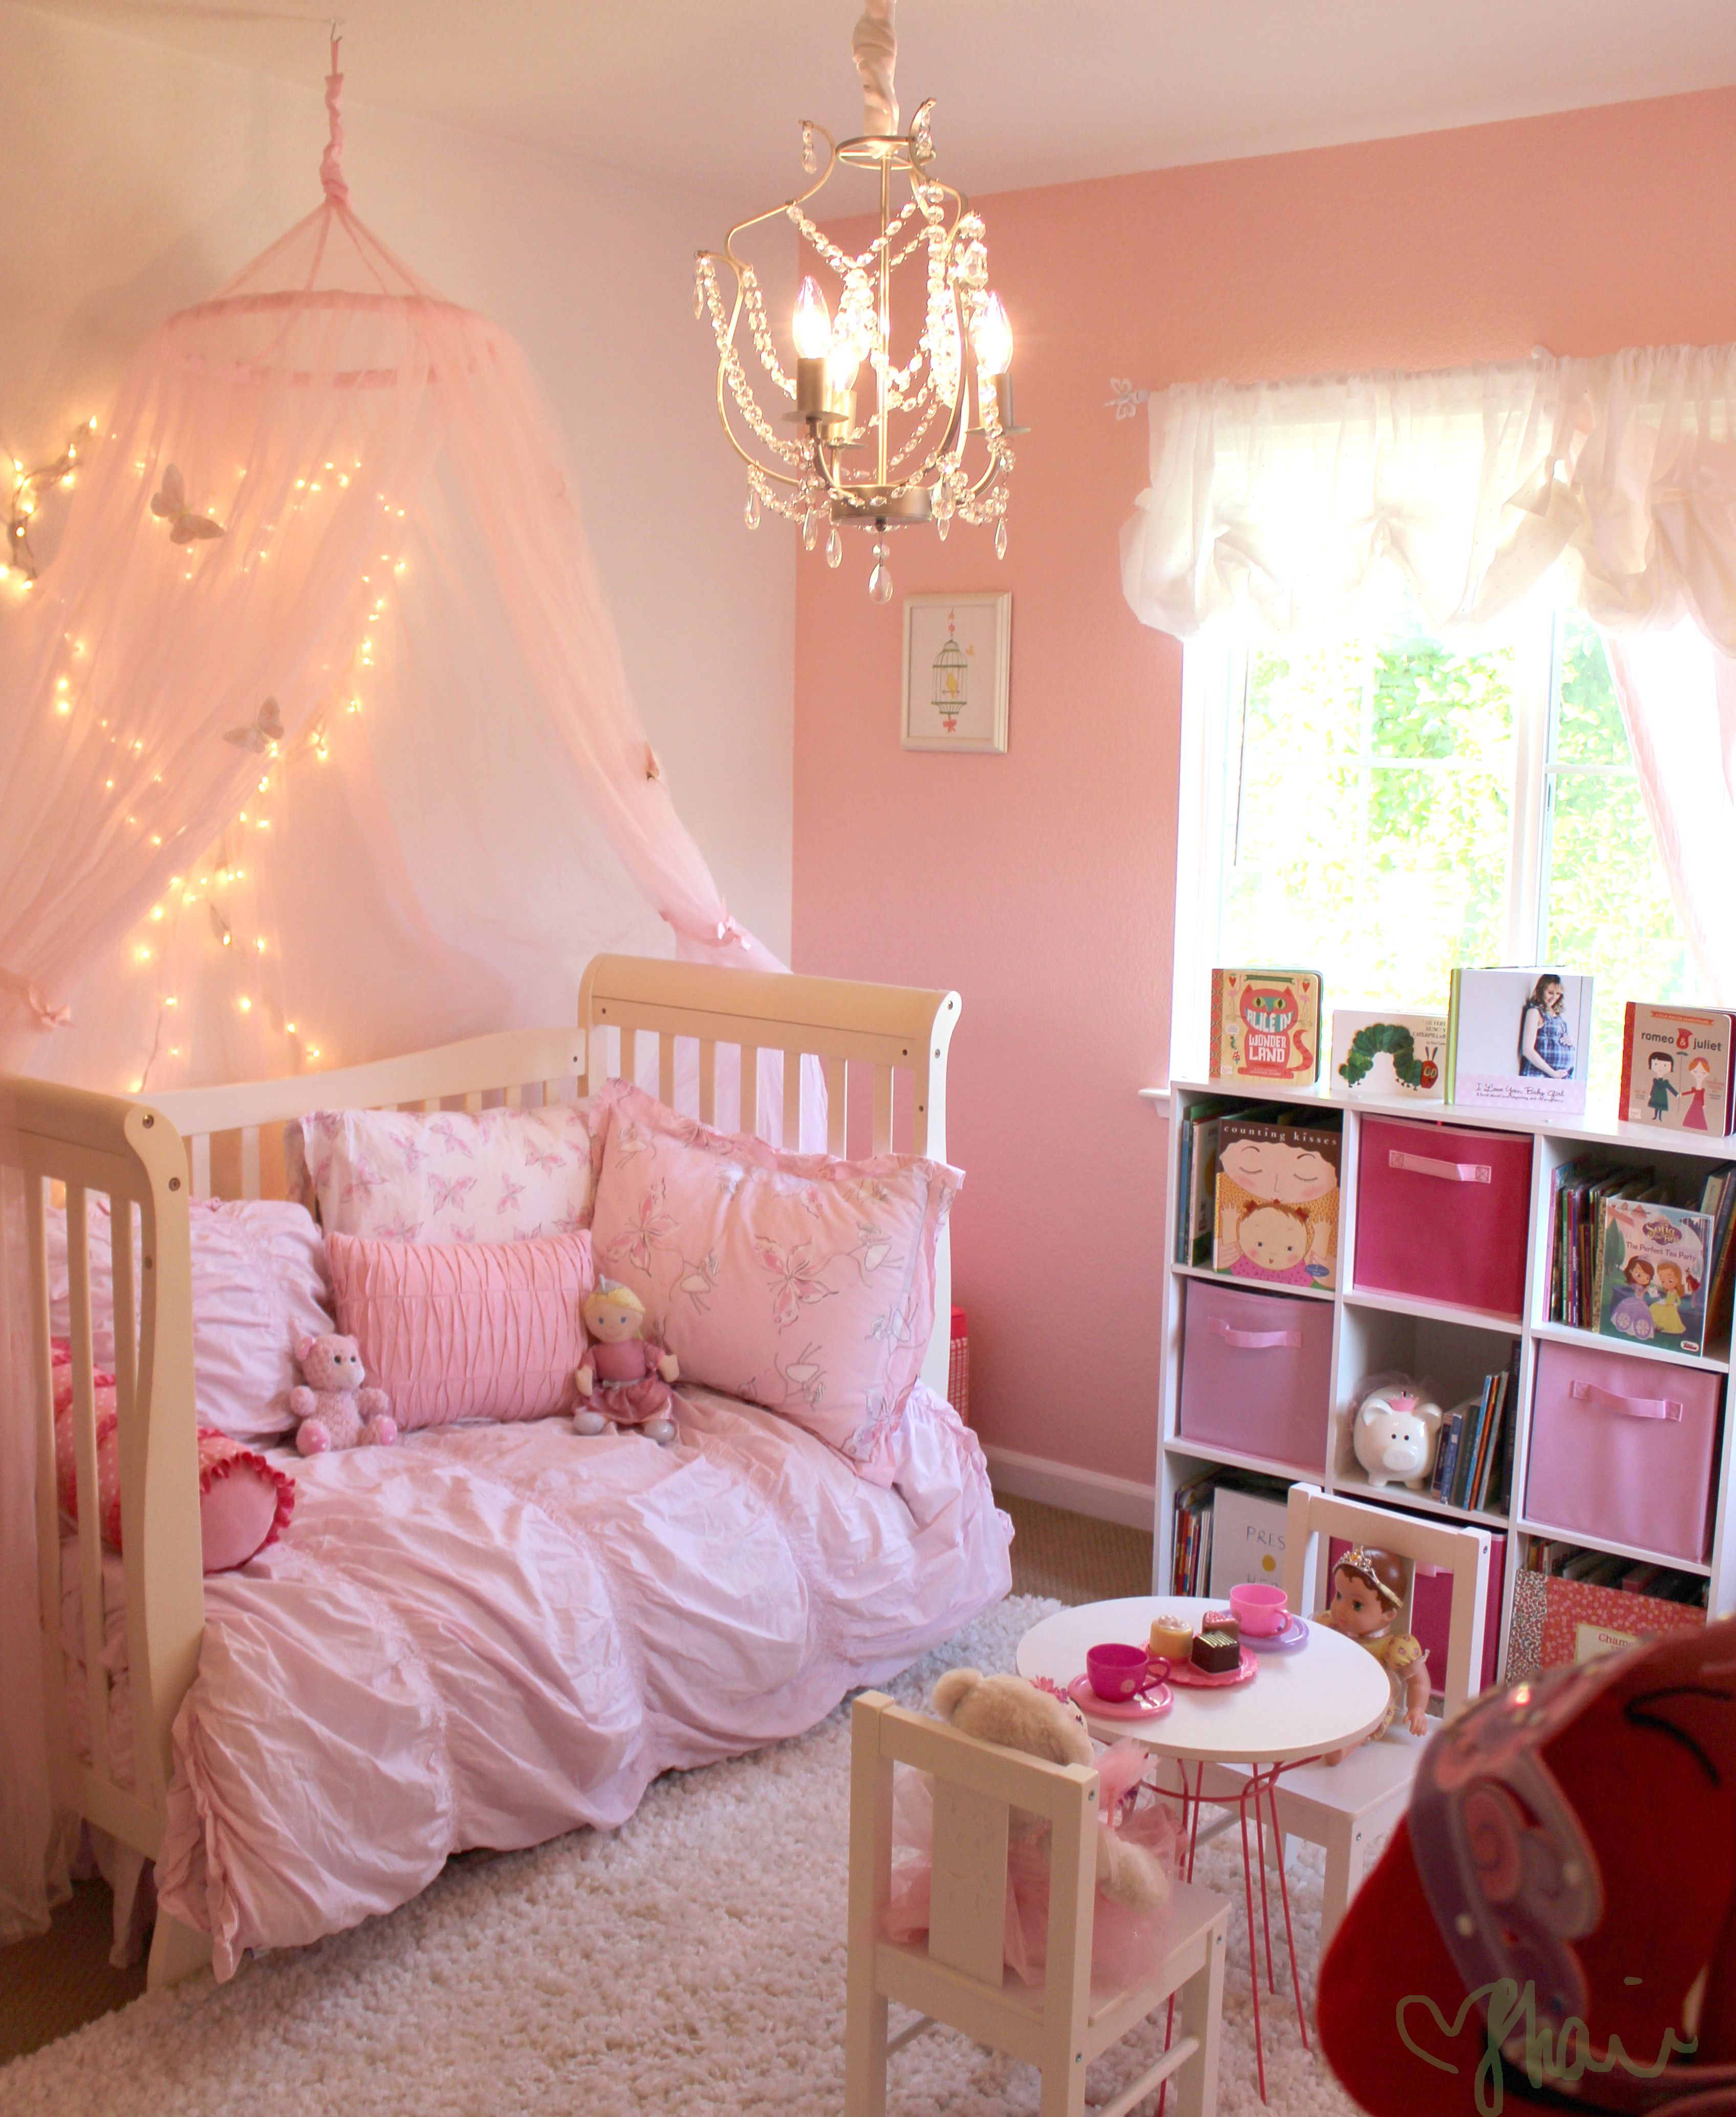 A Chic Toddler Room Fit For A Sweet Little Princess Toddler - Little girls room decor